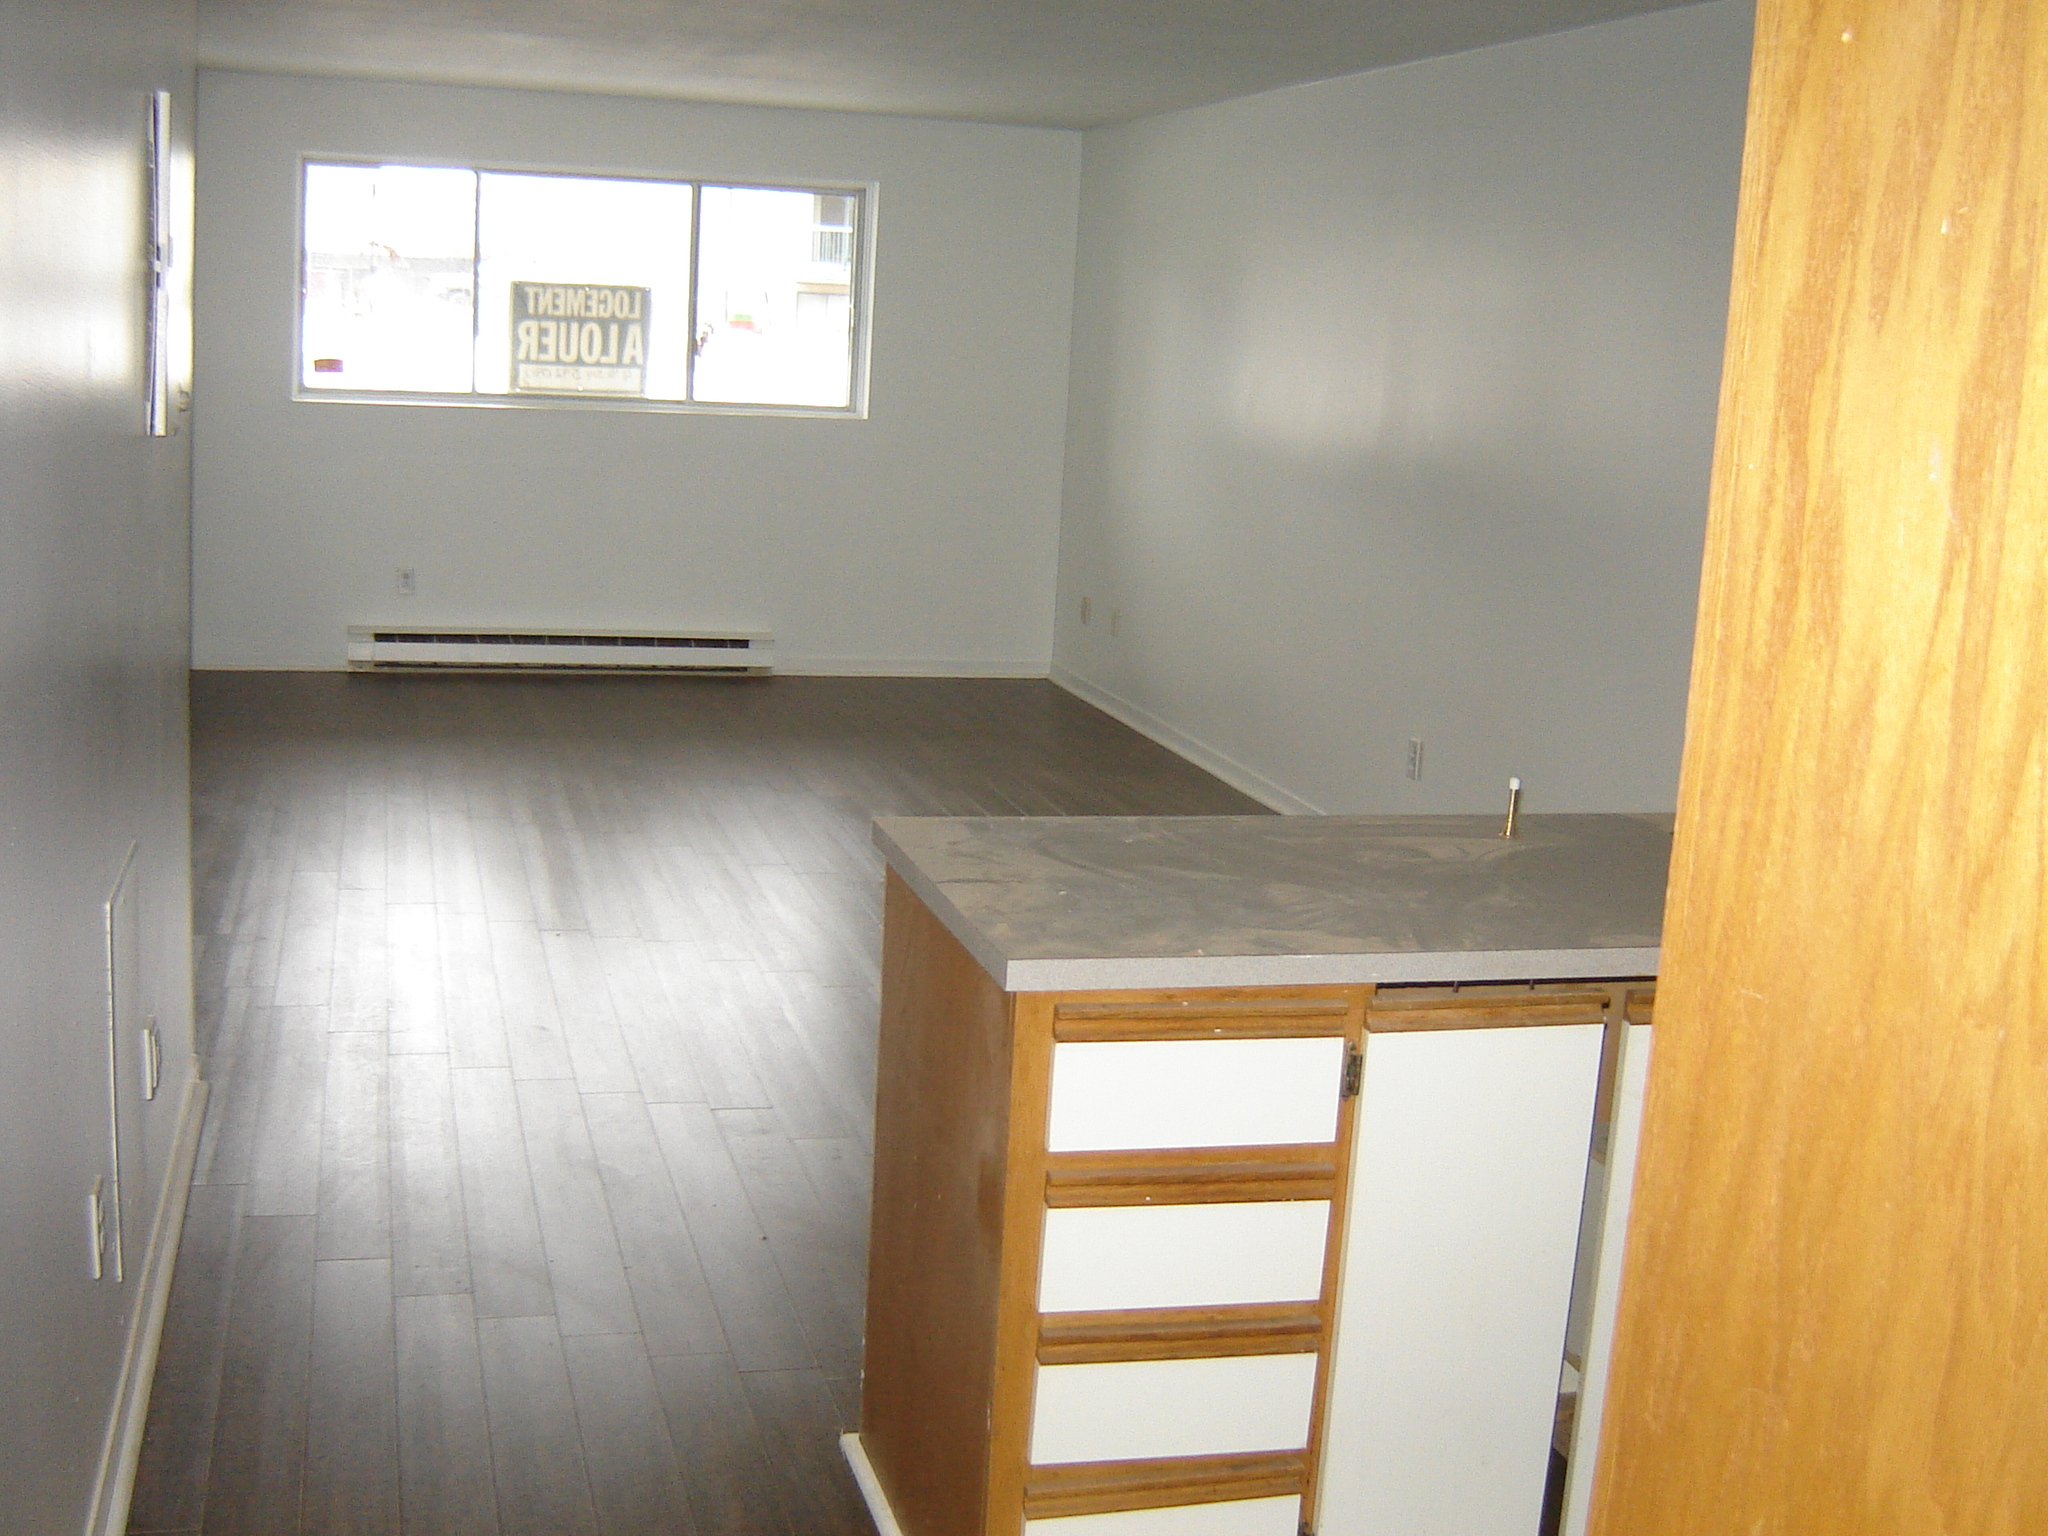 1 bedroom Apartments for rent in Pierrefonds-Roxboro at 18045-18125 Pierrefonds Boulevard - Photo 04 - RentersPages – L22166